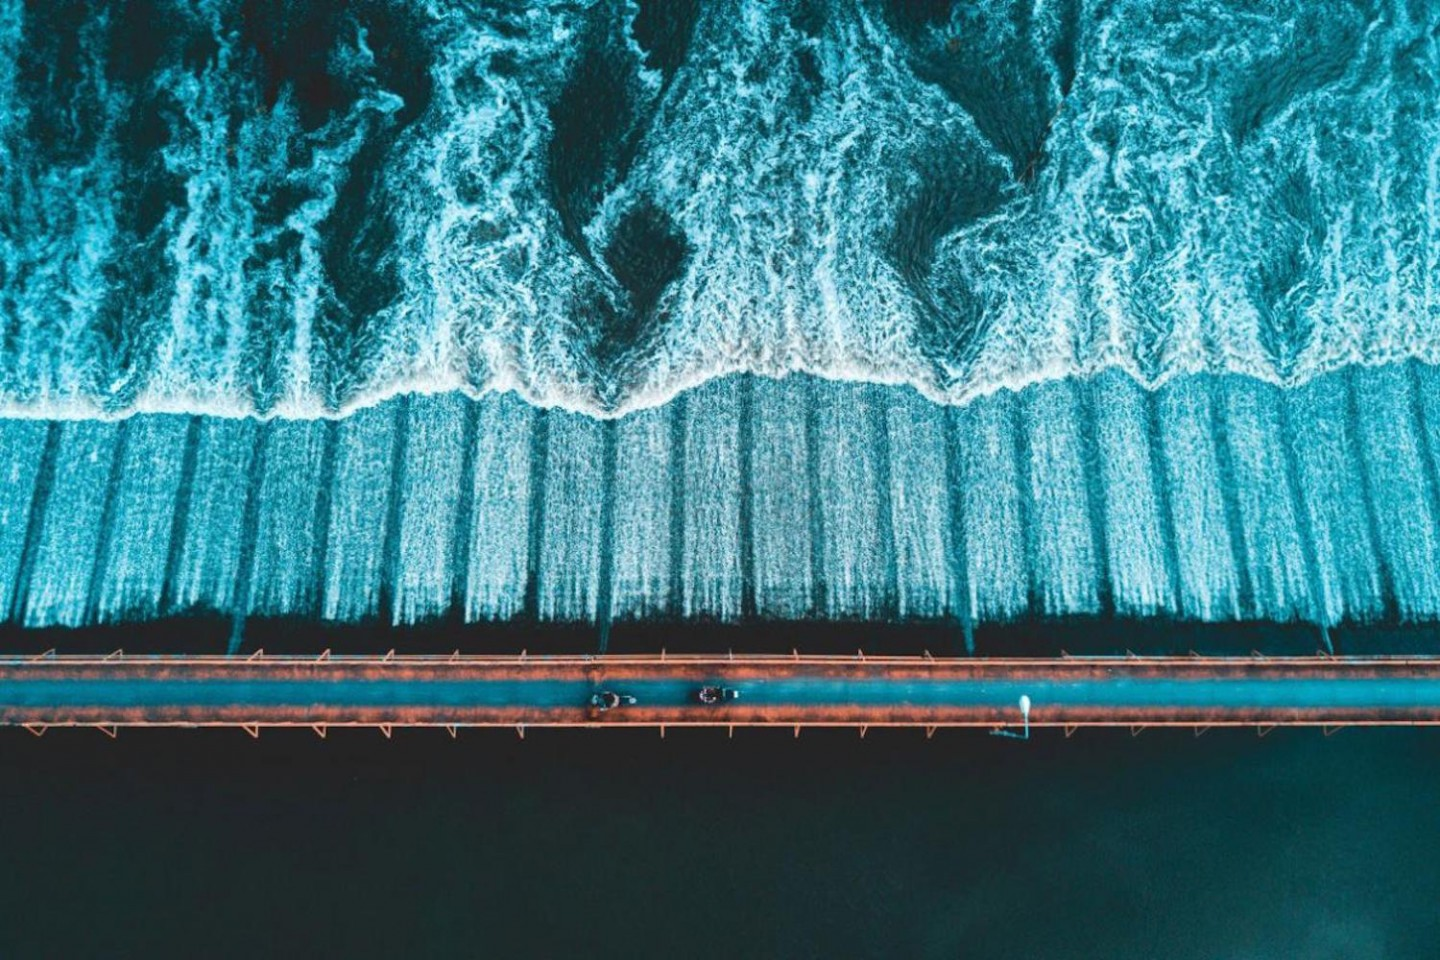 Drone Photography - elle man14